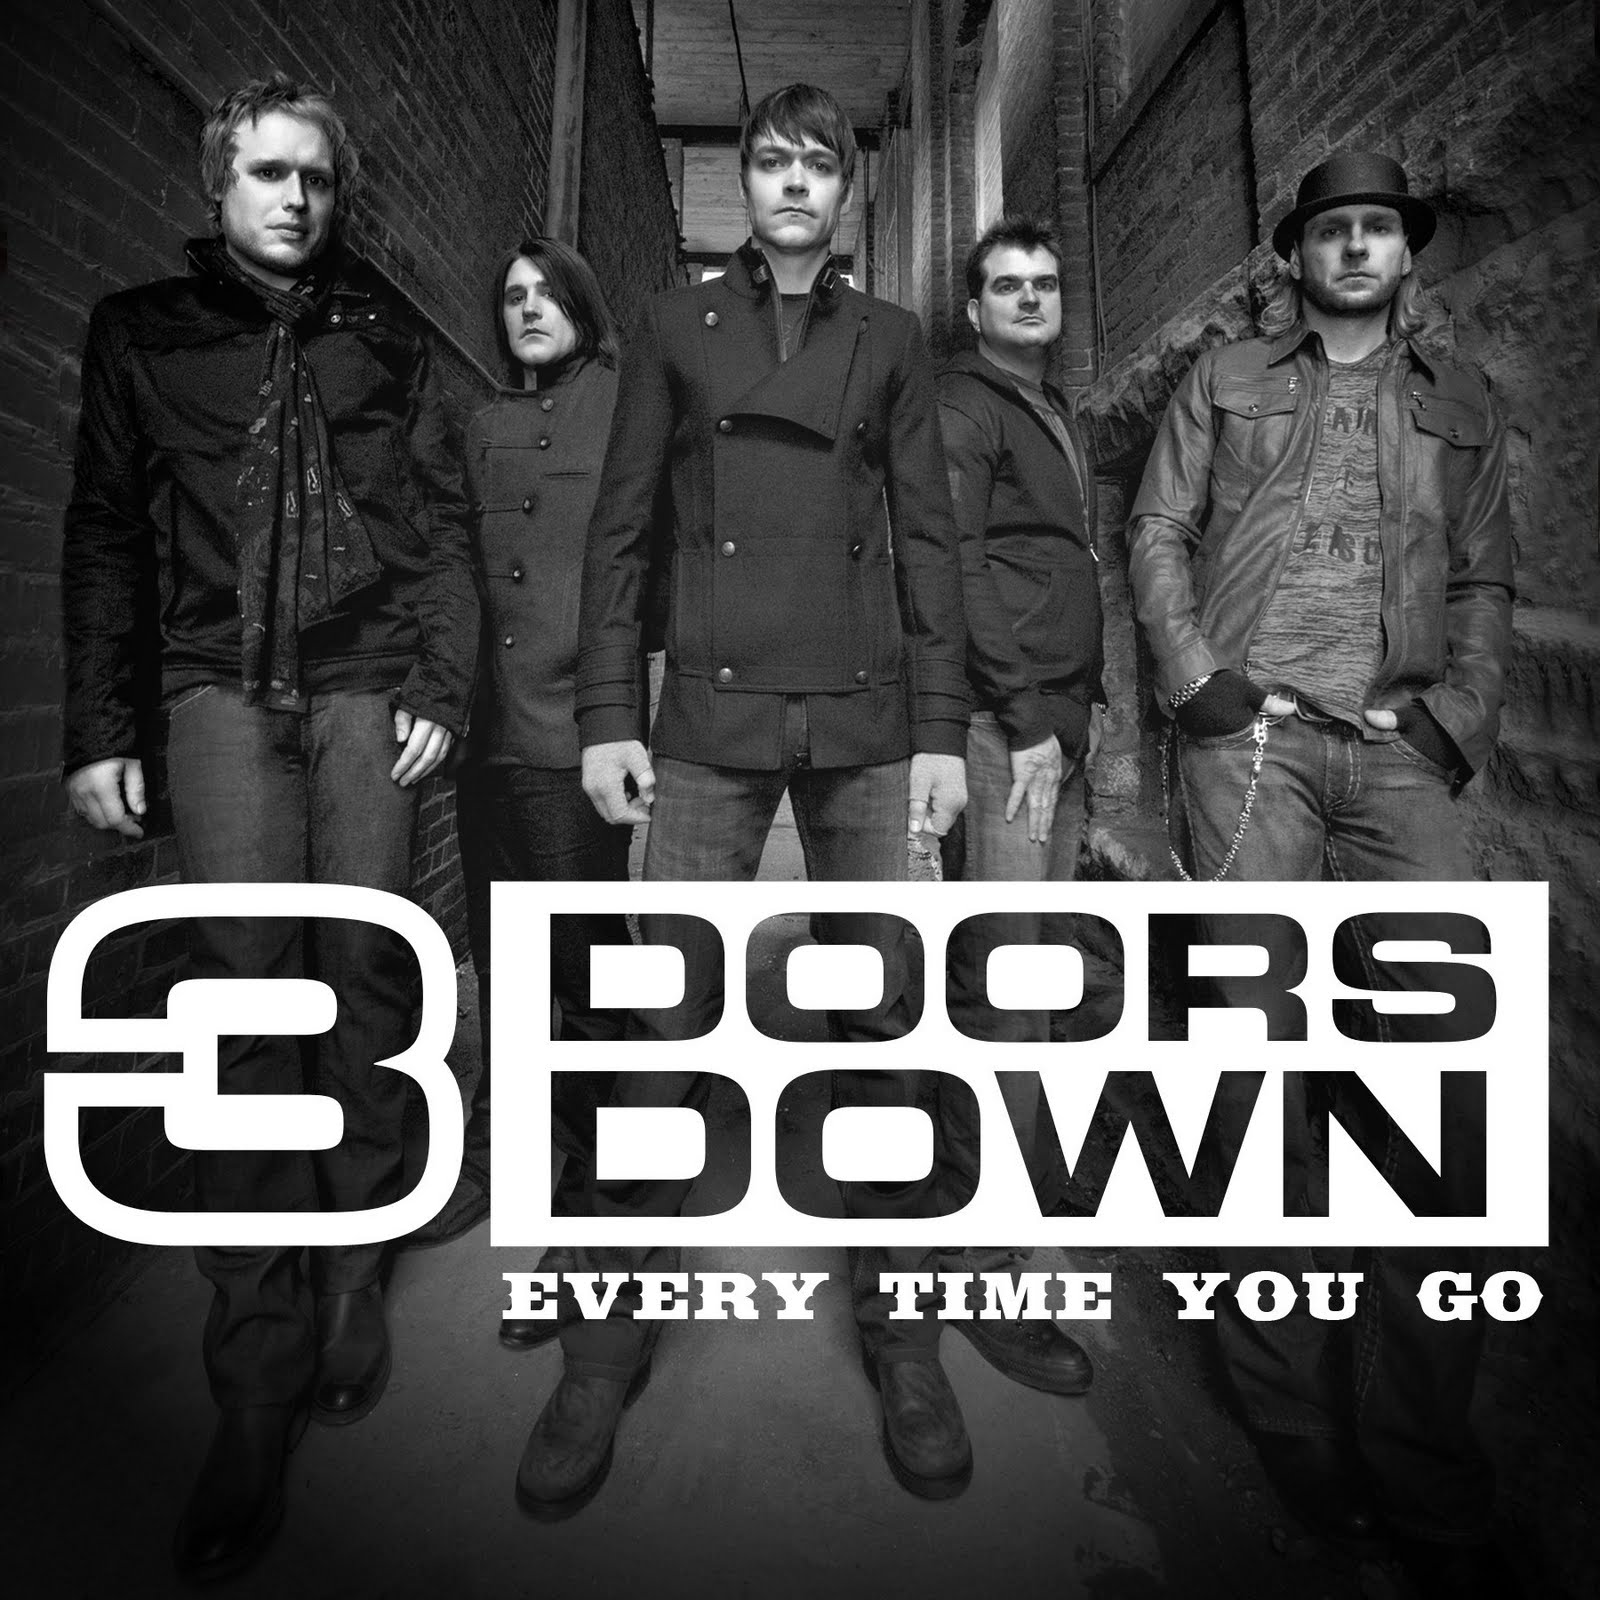 3 Doors Down Official Top 10 Songs  sc 1 st  The Top Ten Songs - blogger & The Top Ten Songs | 2014: 3 Doors Down Official Top 10 Songs pezcame.com